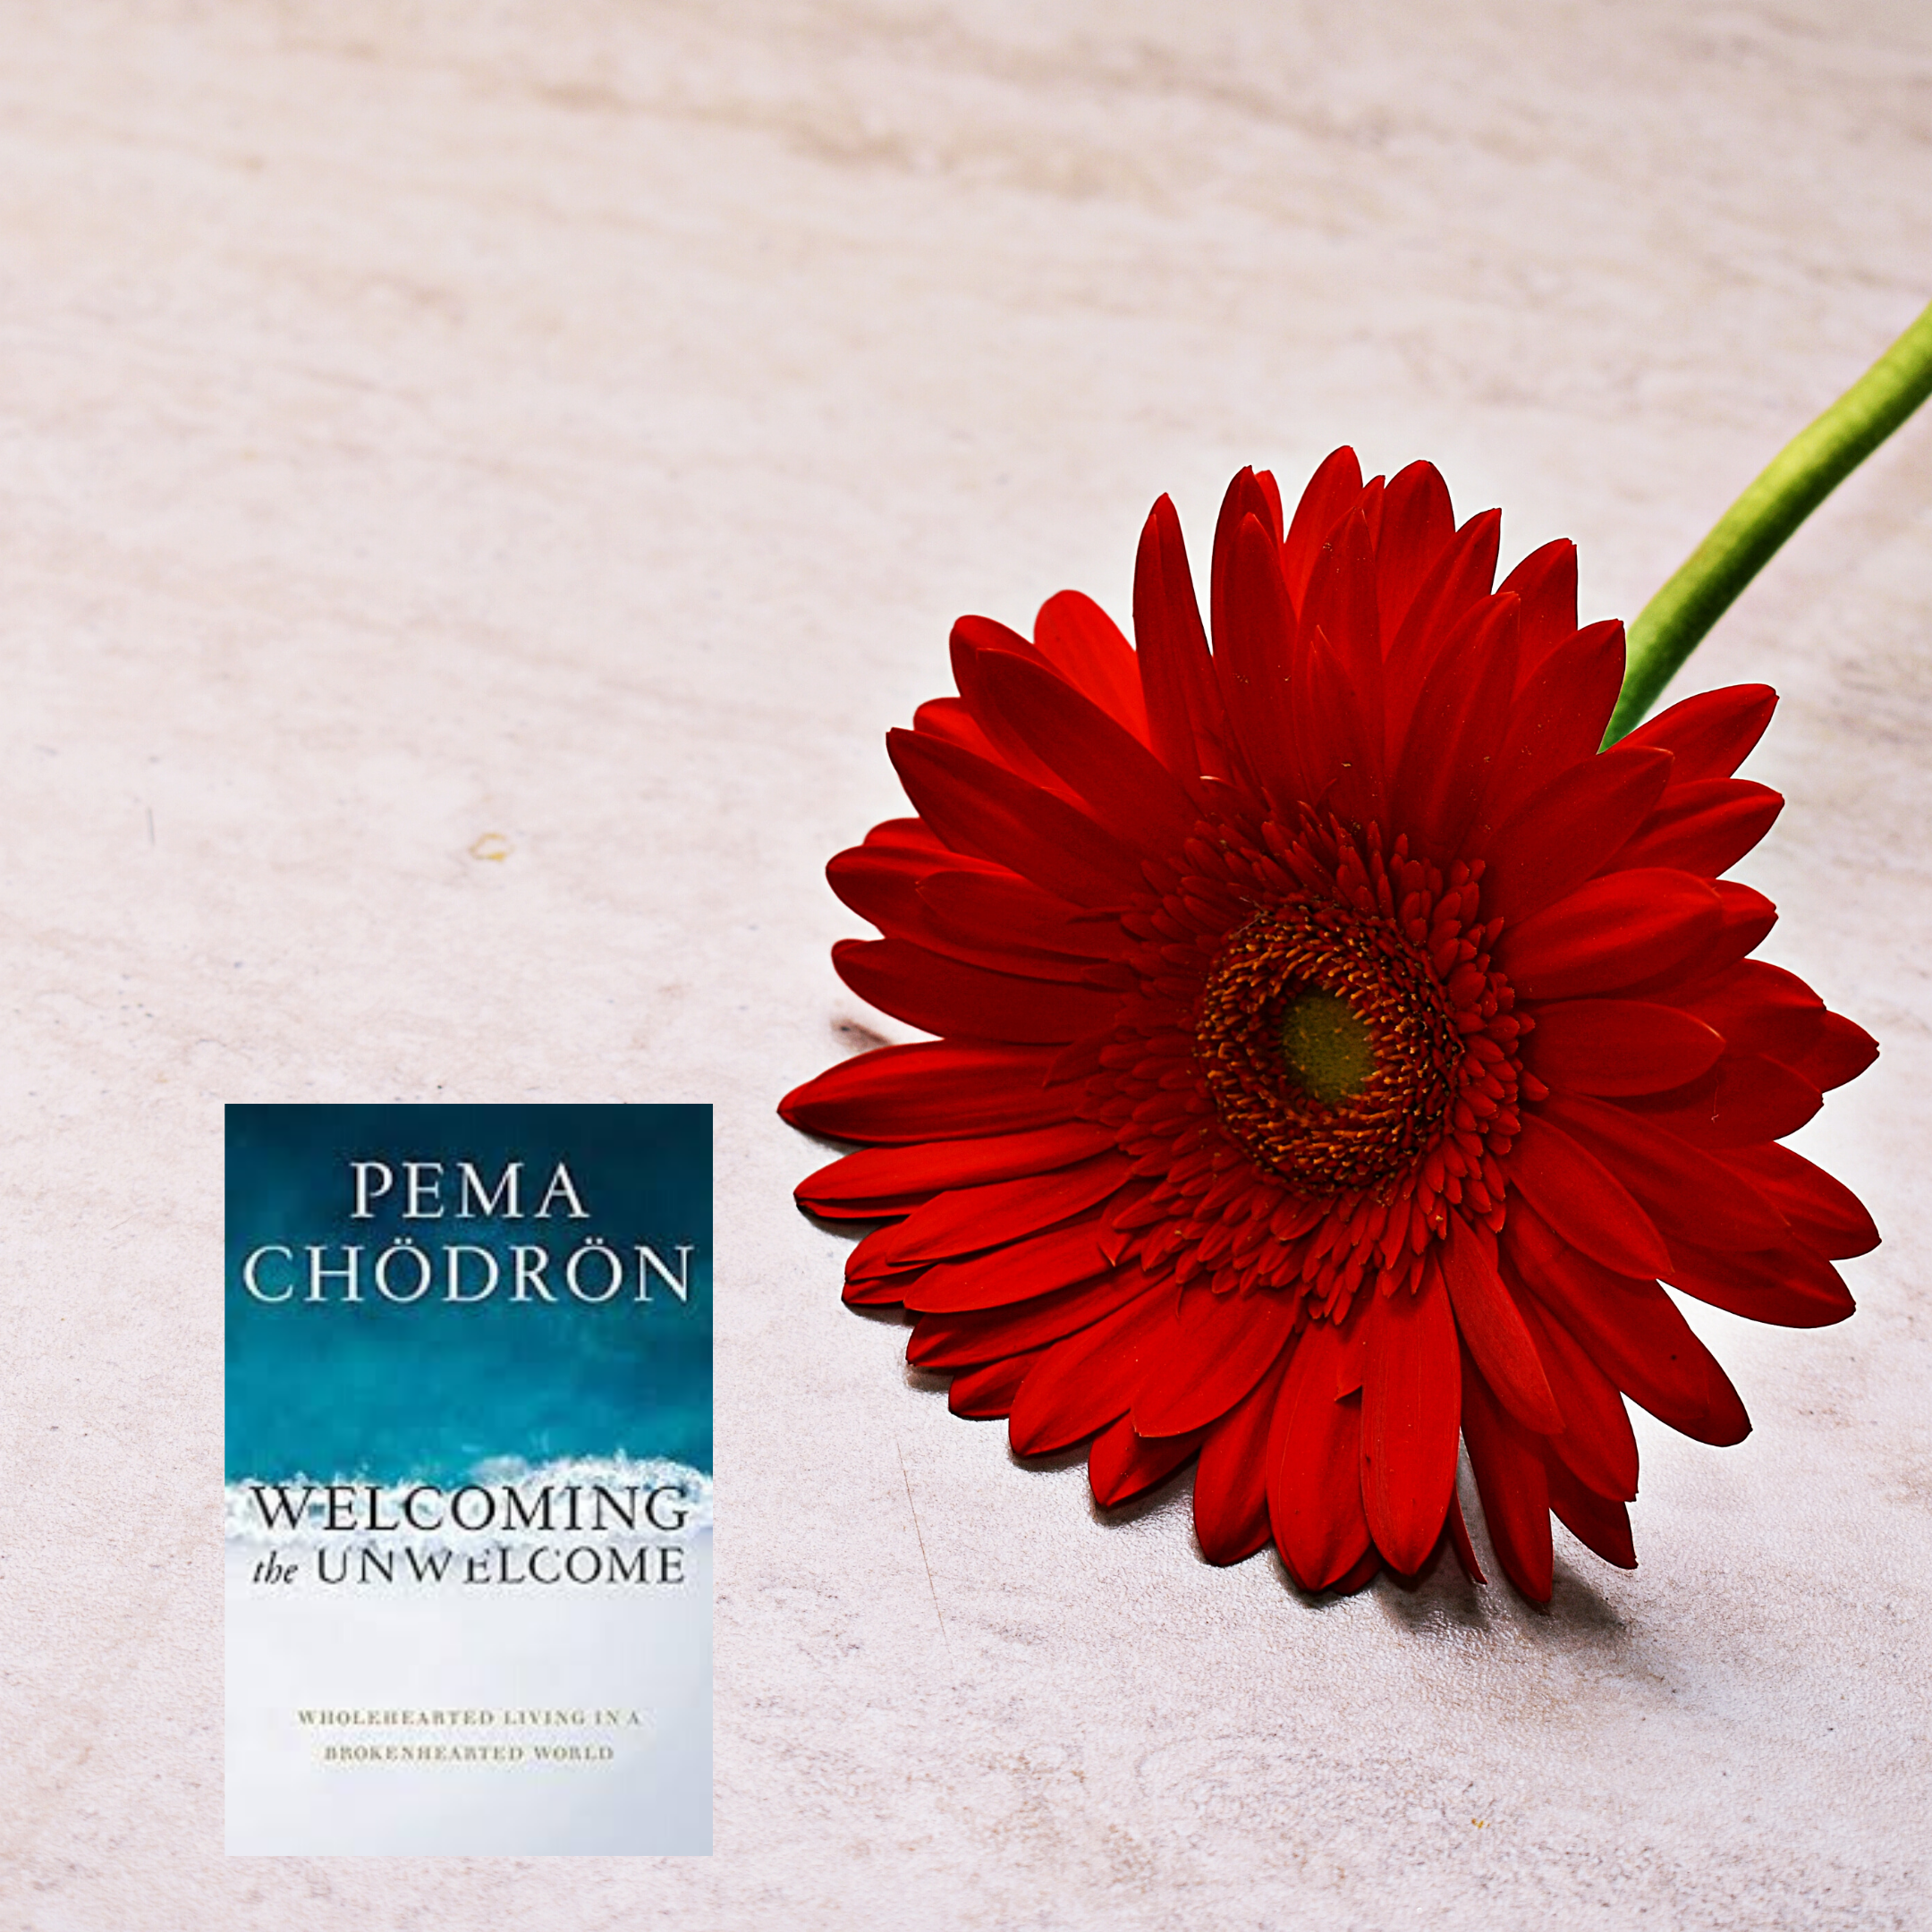 Book Review: Welcoming the Unwelcome by Pema Chodron